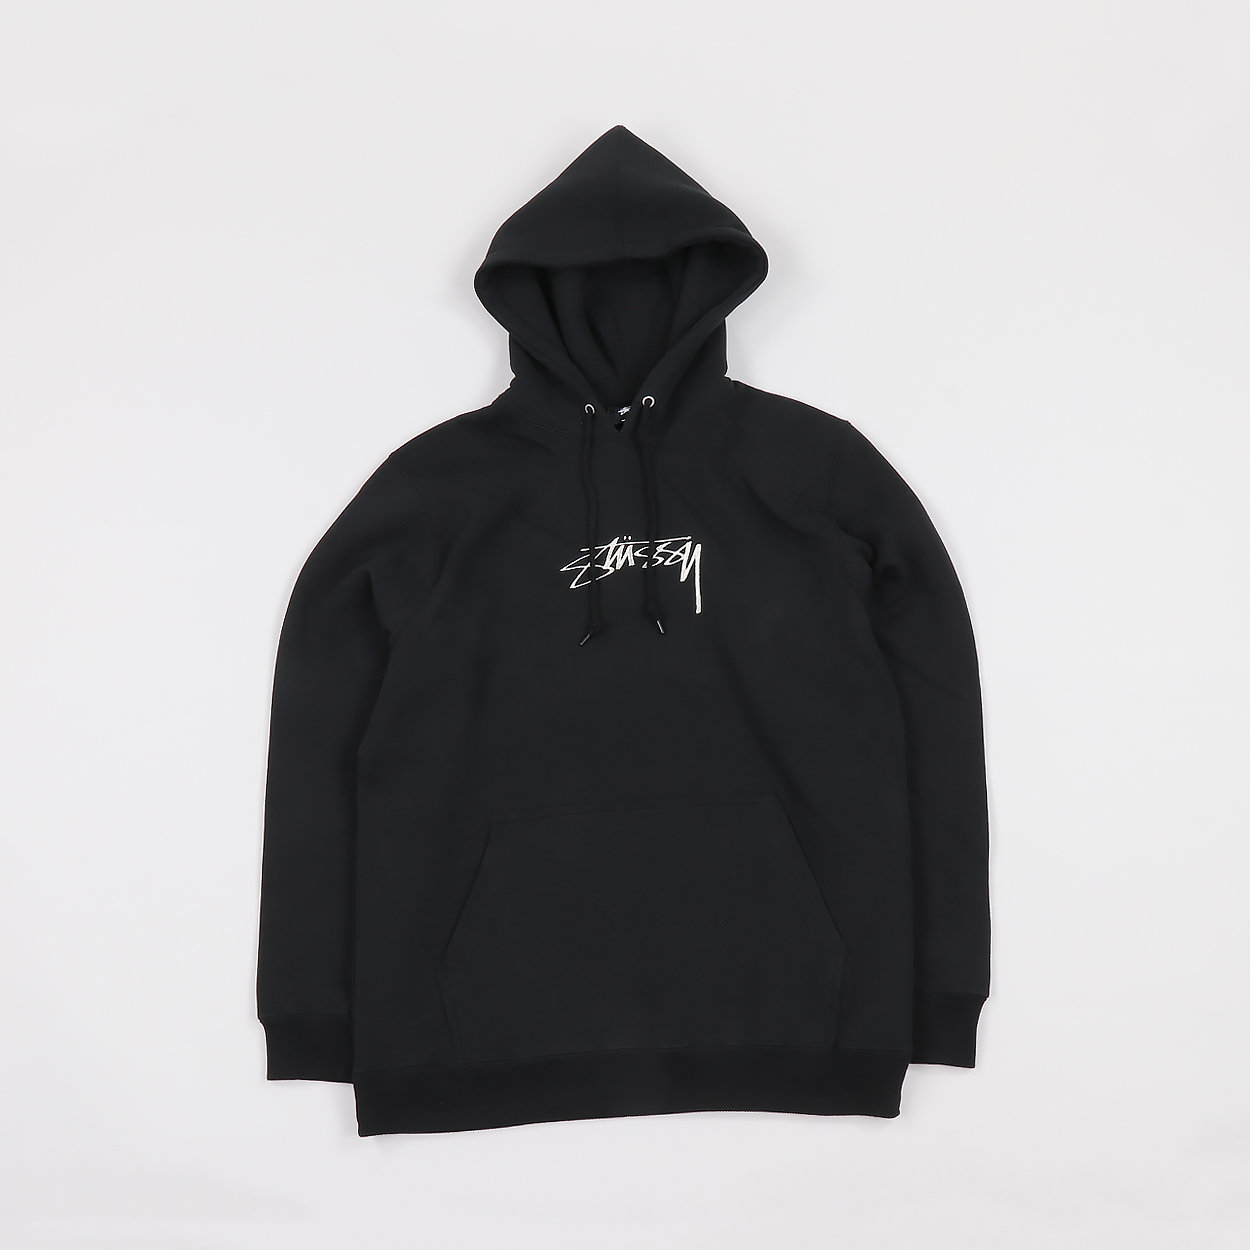 Stussy Streetwear Smooth Stock App. Embroidered Hoodie Black £68.60 3a7d32c28